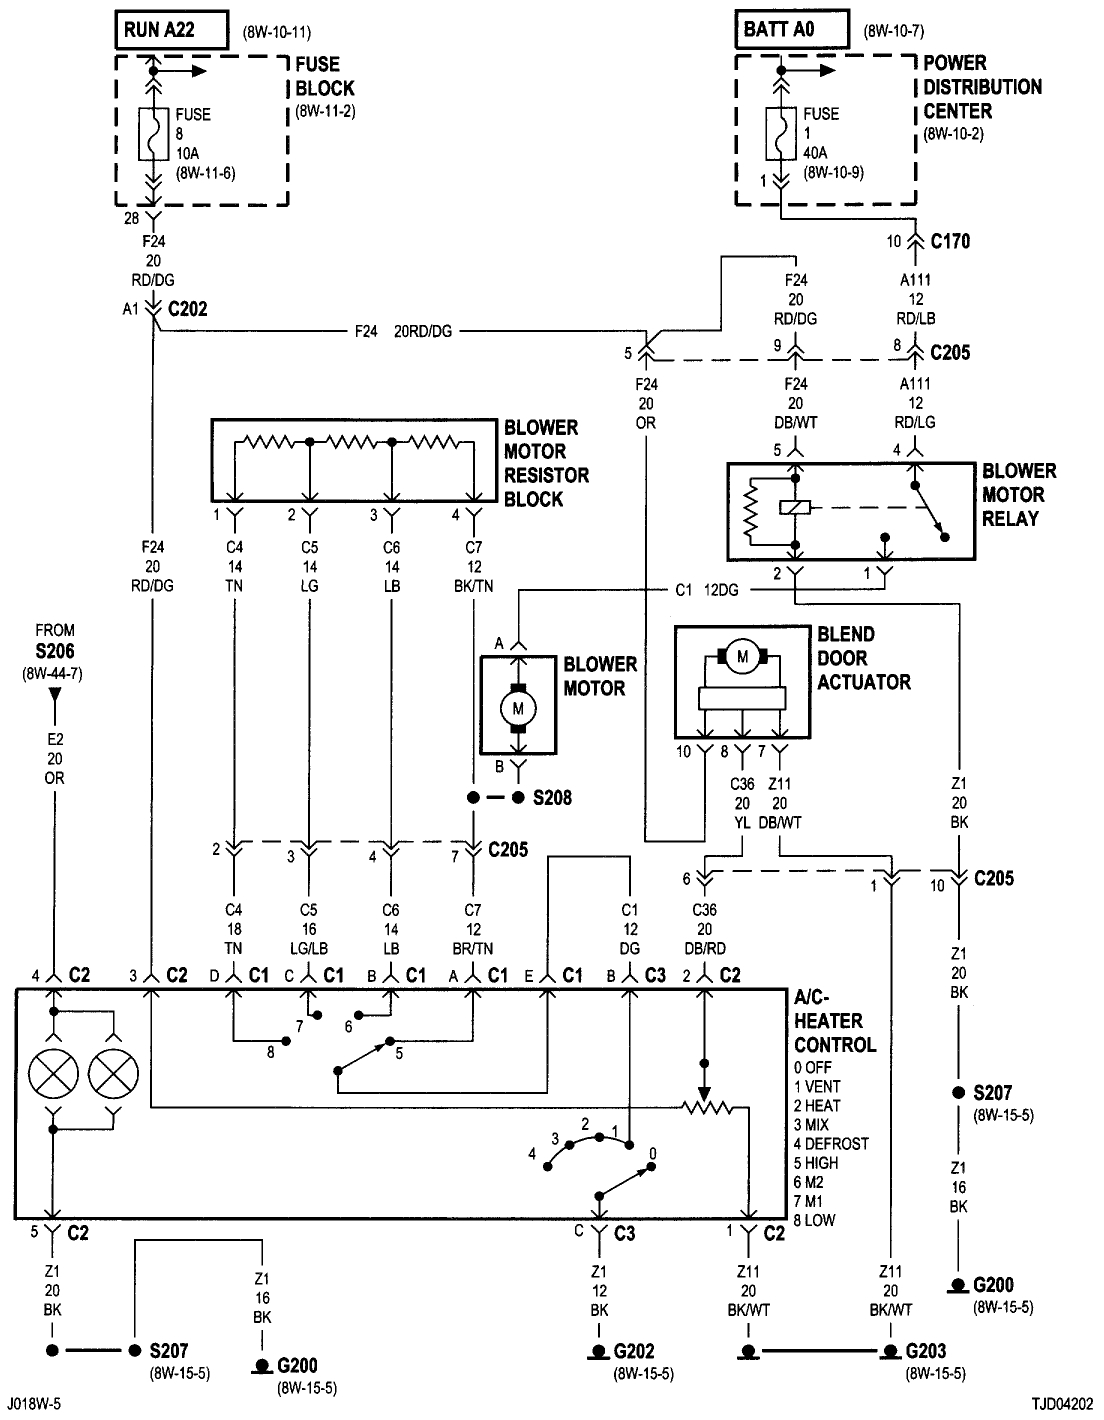 2006 Jeep Liberty Ignition Wiring Diagram from wholefoodsonabudget.com